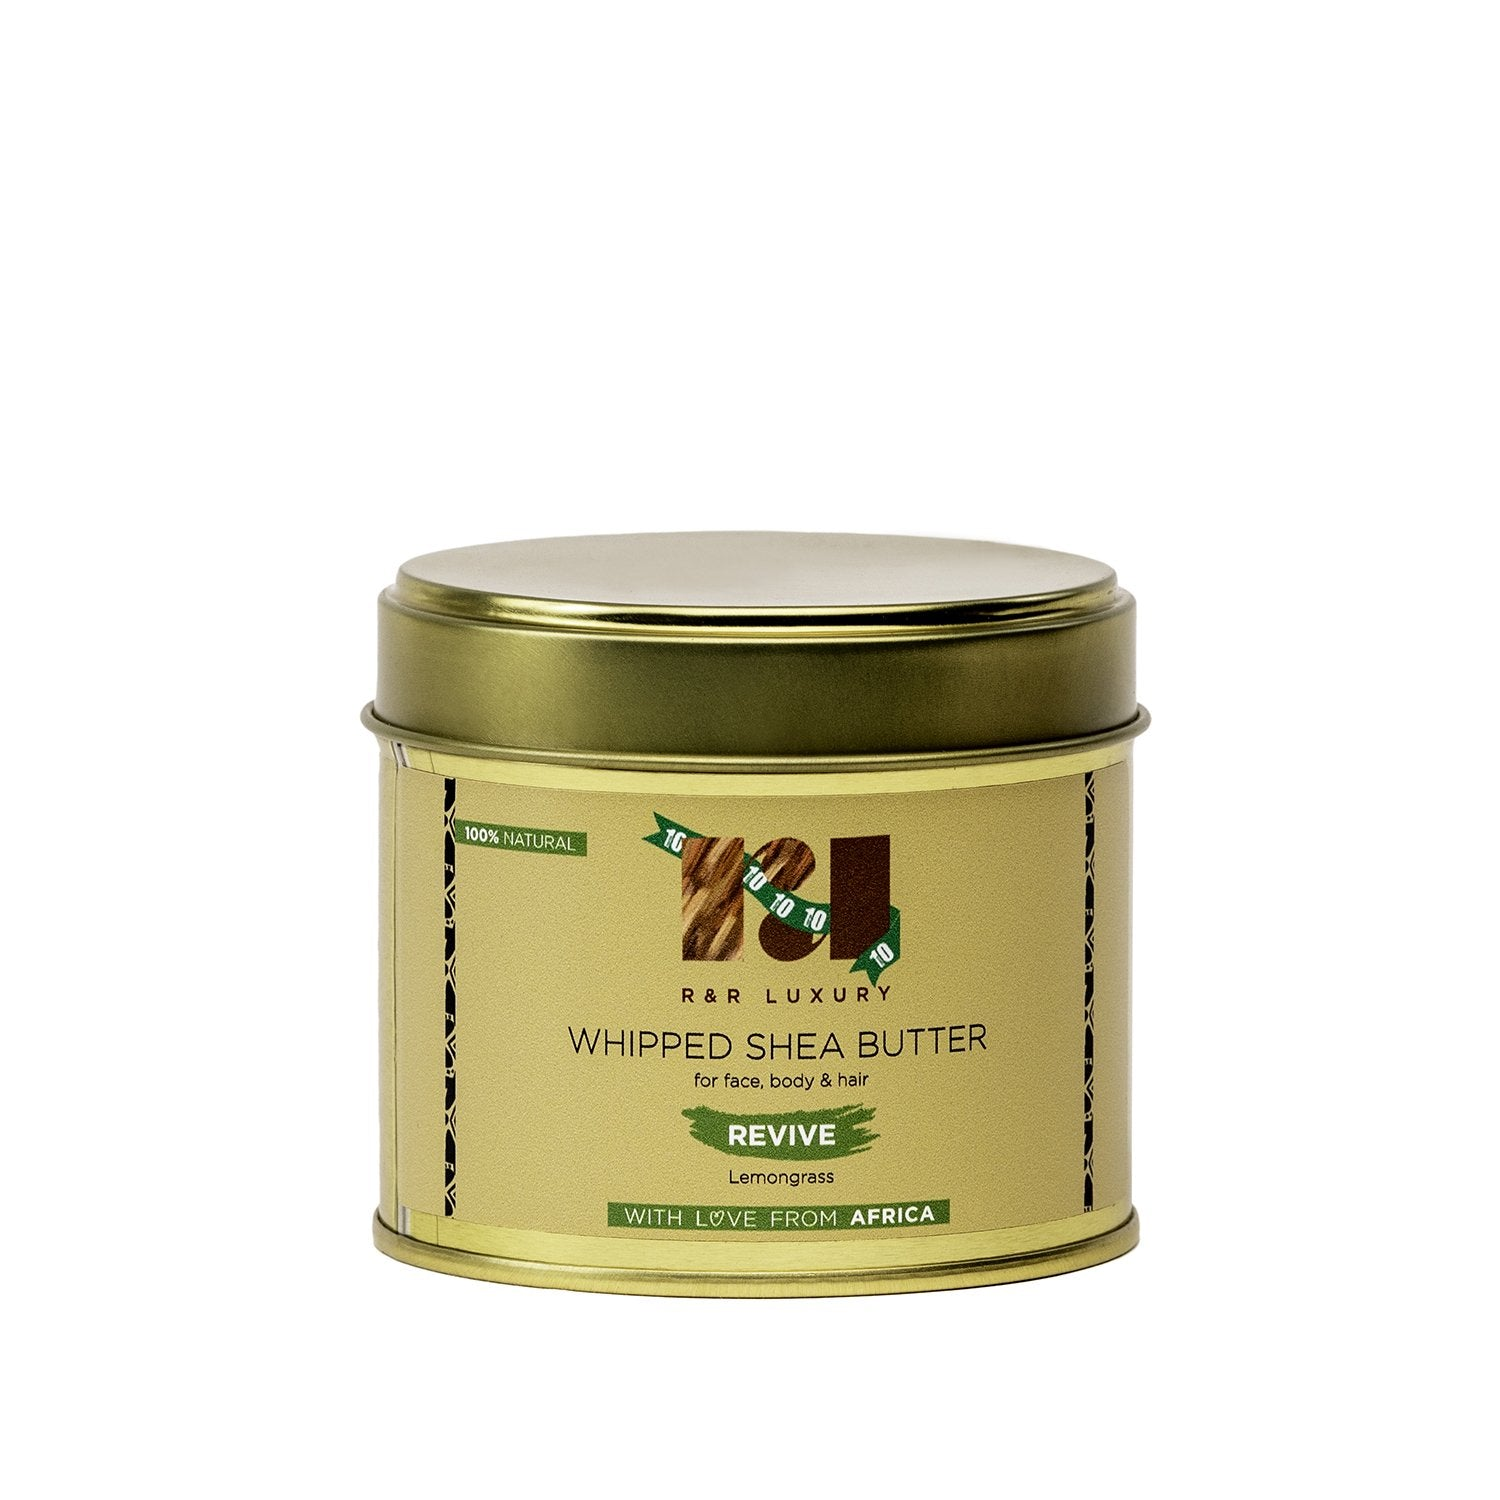 Eco-Friendly Whipped Shea Butter - Revive